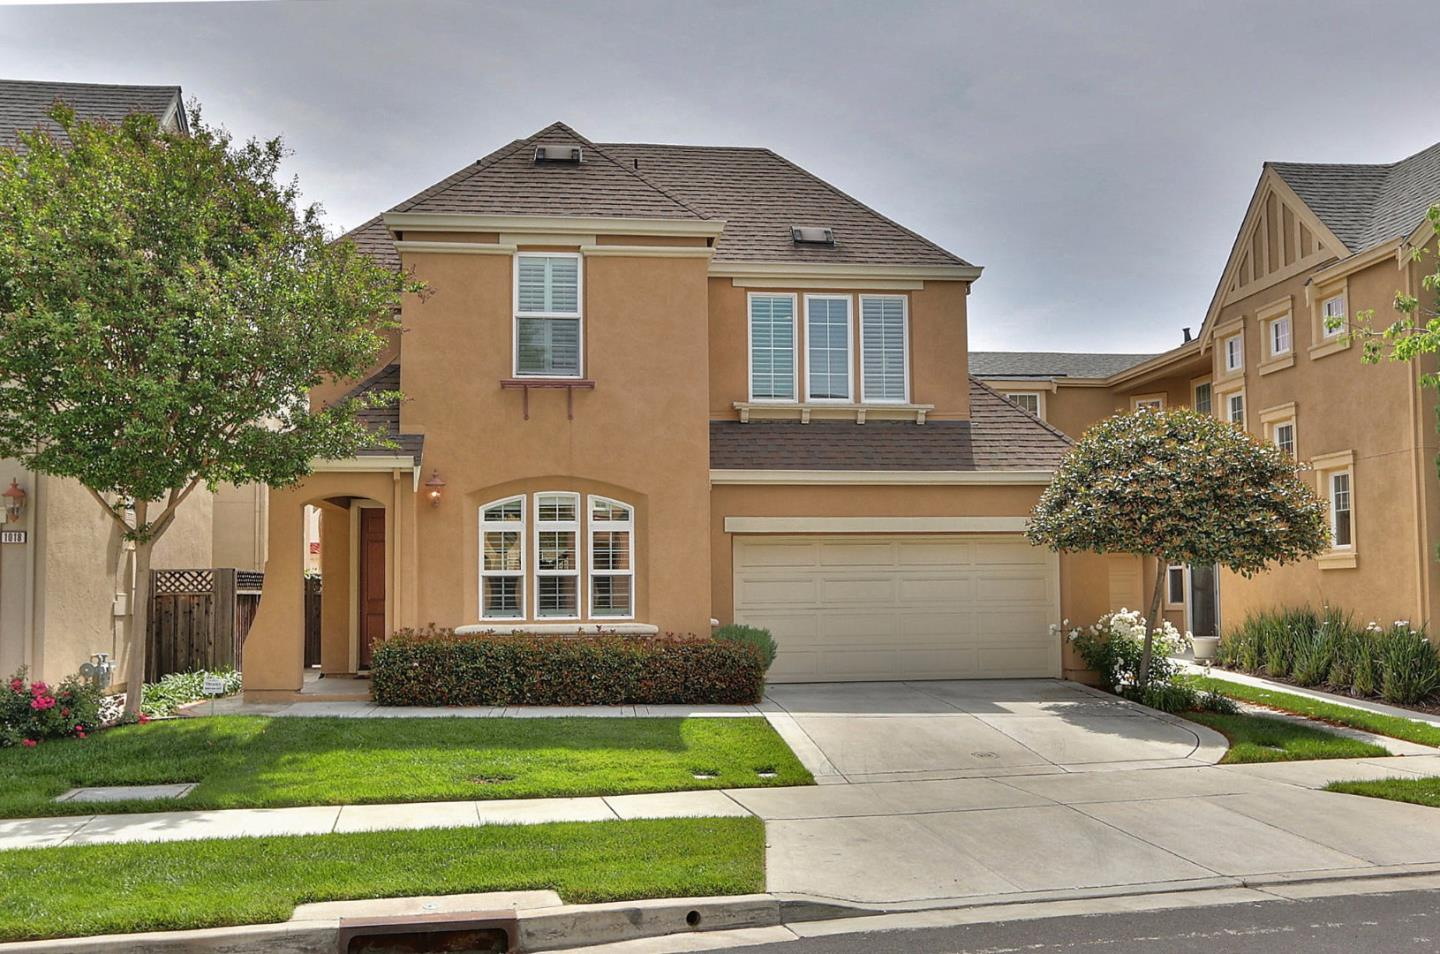 1022 Brackett Way, Santa Clara, CA